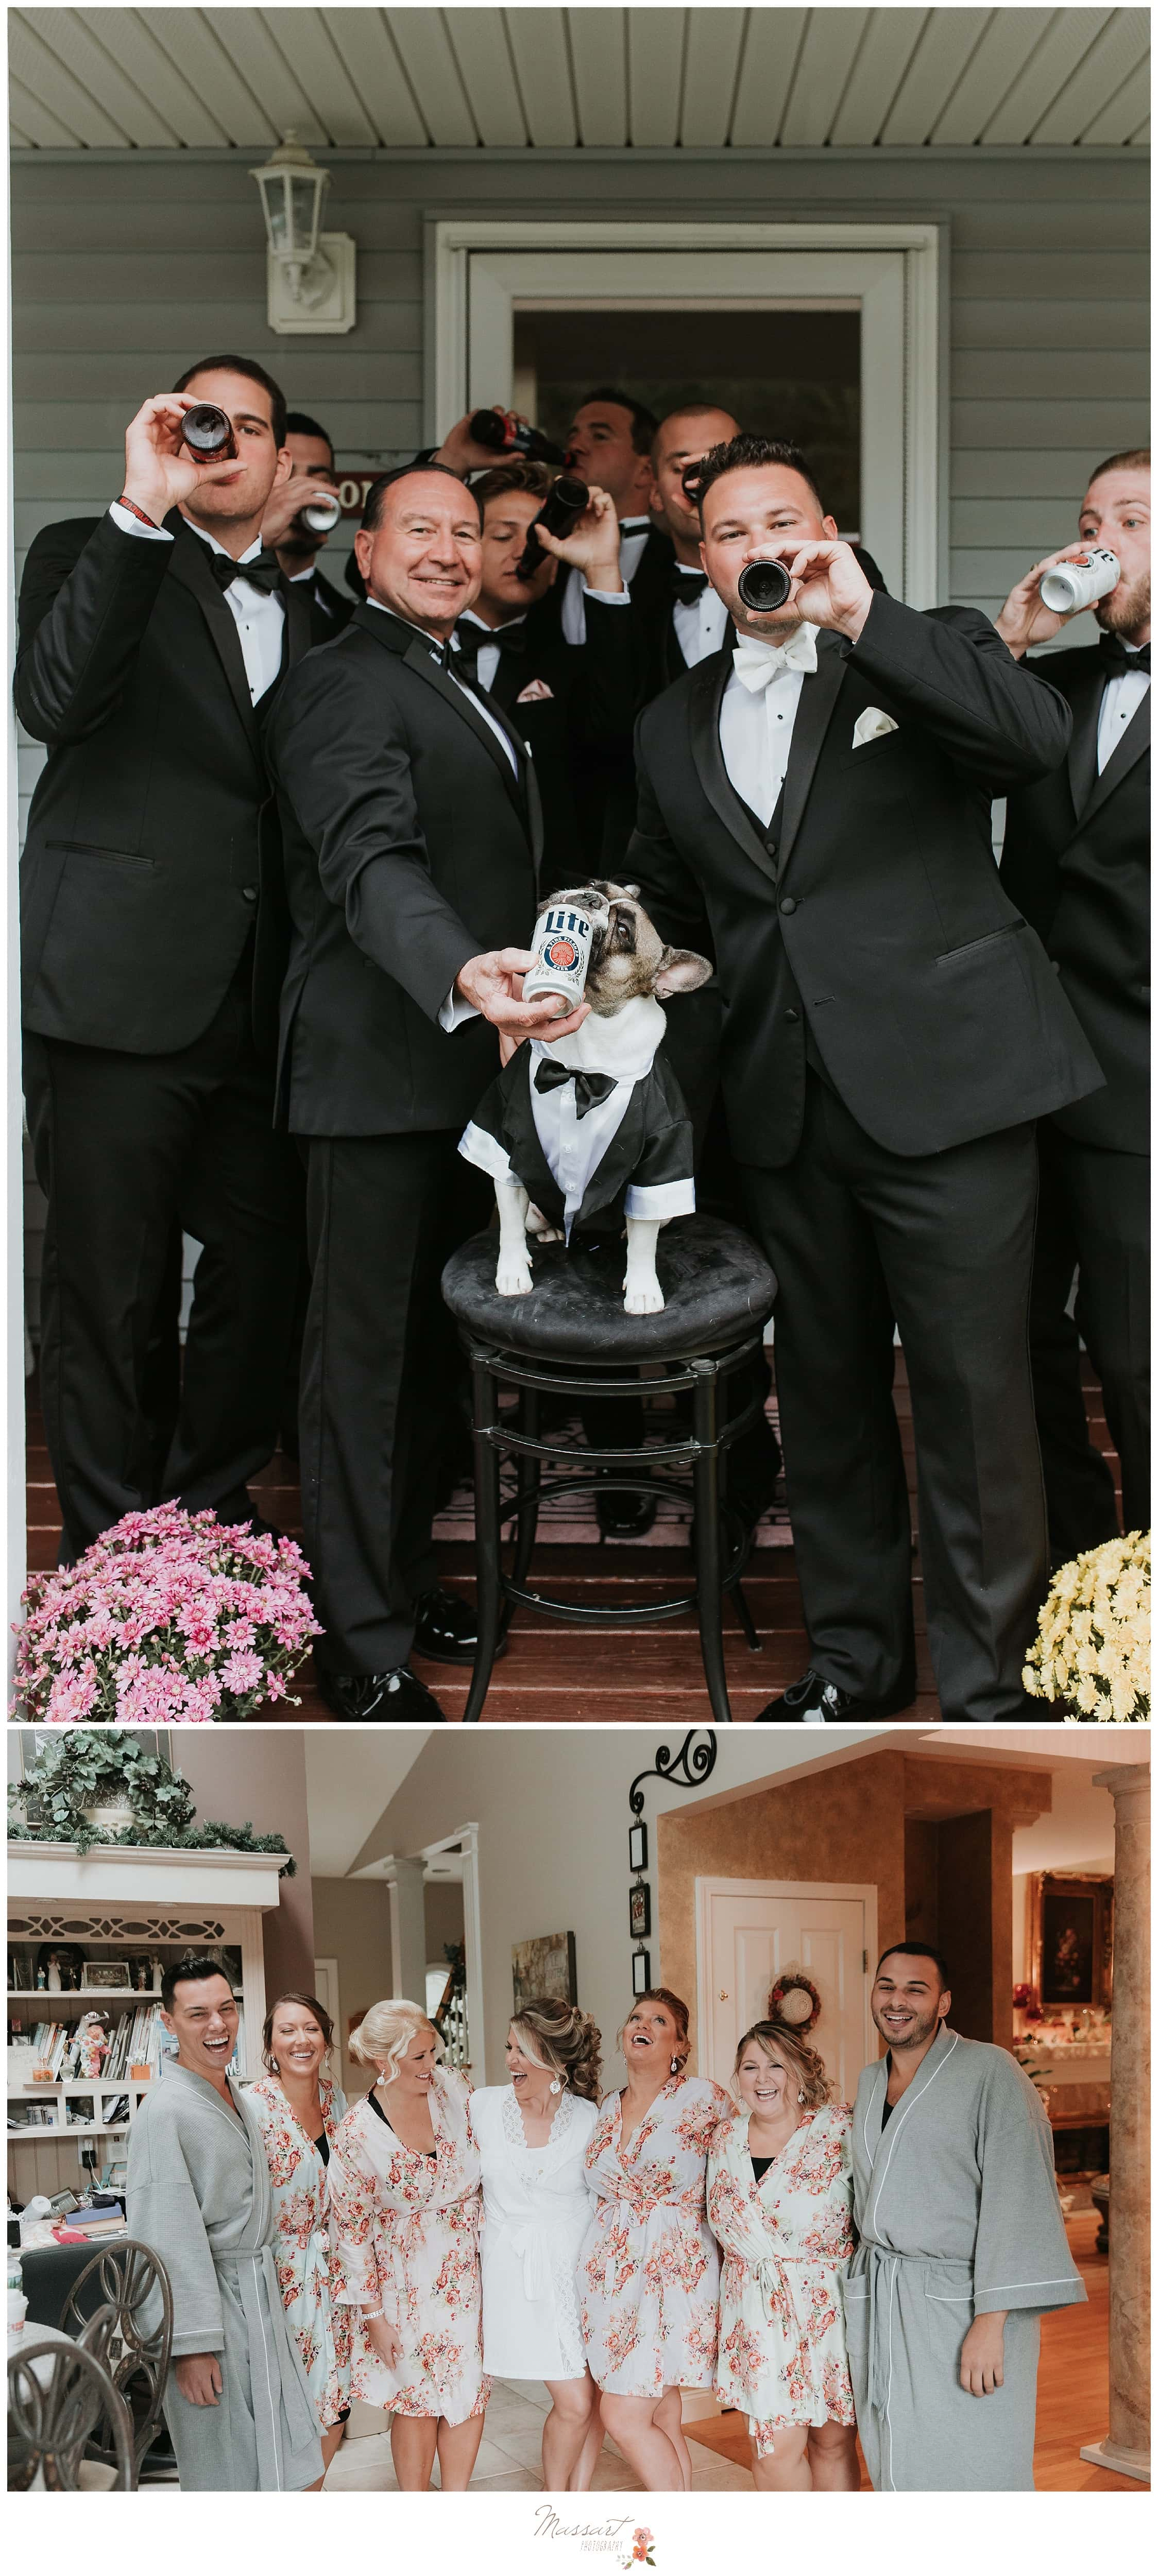 Formal portraits of the groomsmen, including their pup, and the bridal party getting ready for the Providence, RI wedding photographed by Massart Photography Rhode Island